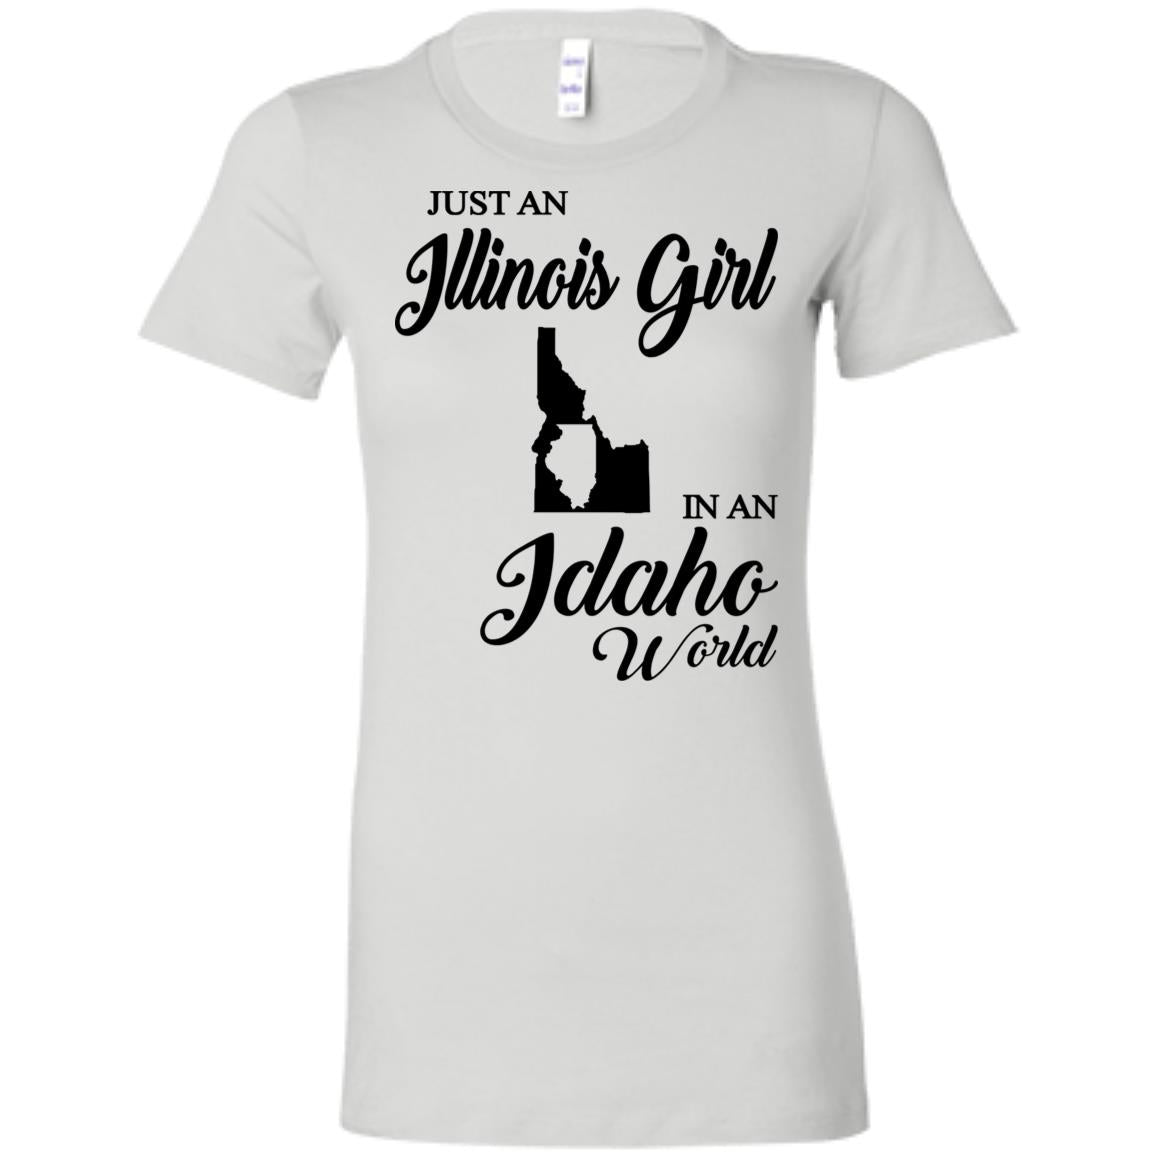 Just An Illinois Girl In An Idaho World T-shirt